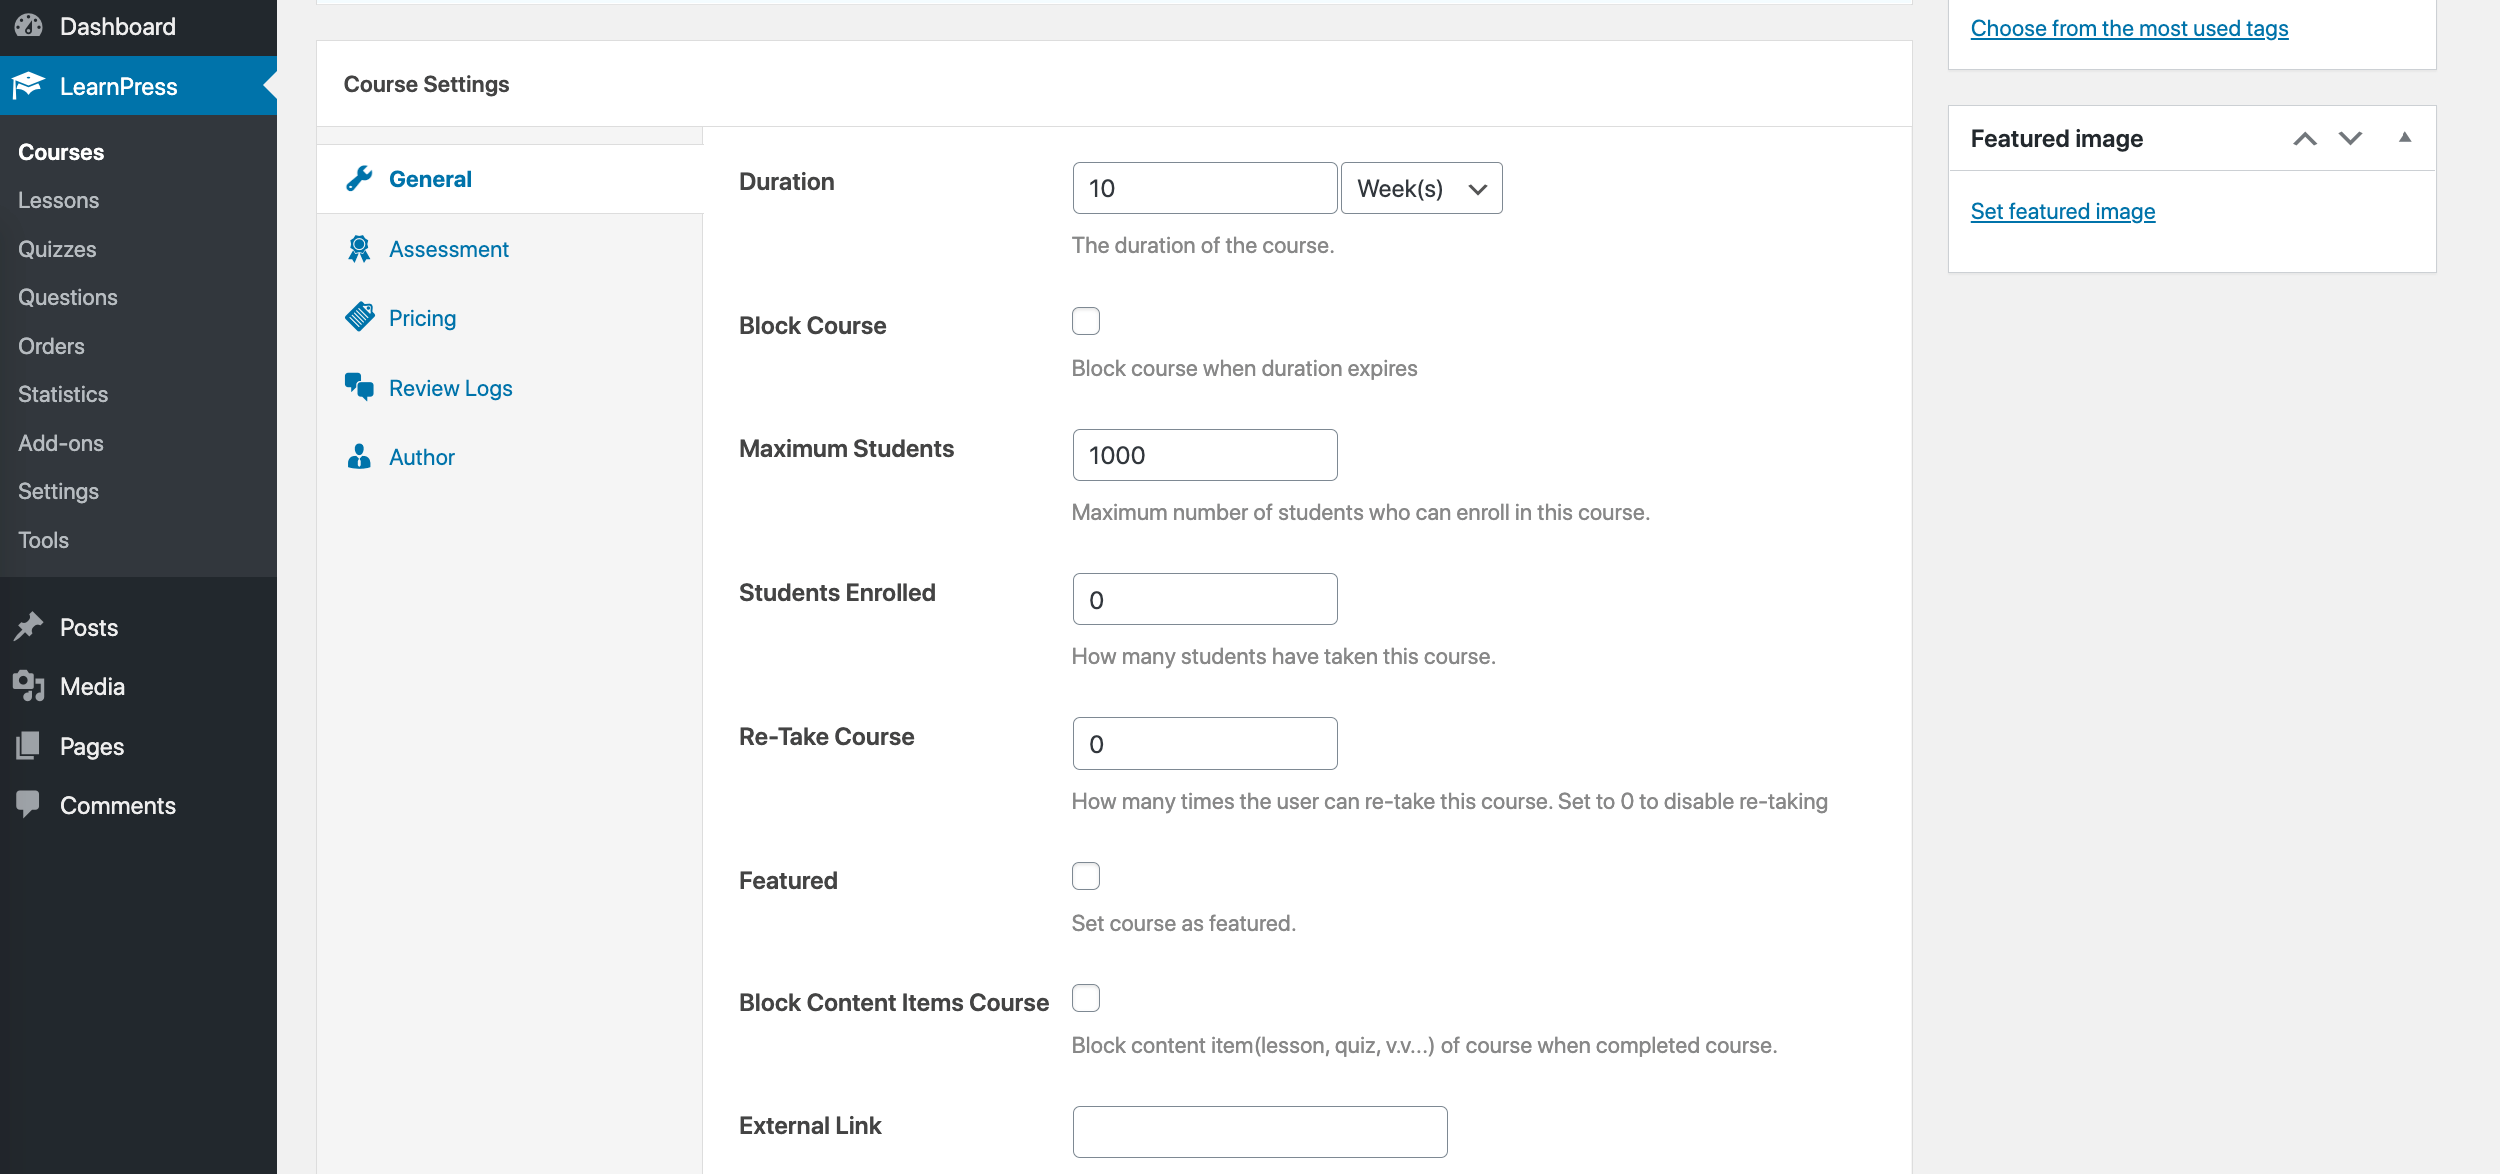 LearnPress course settings